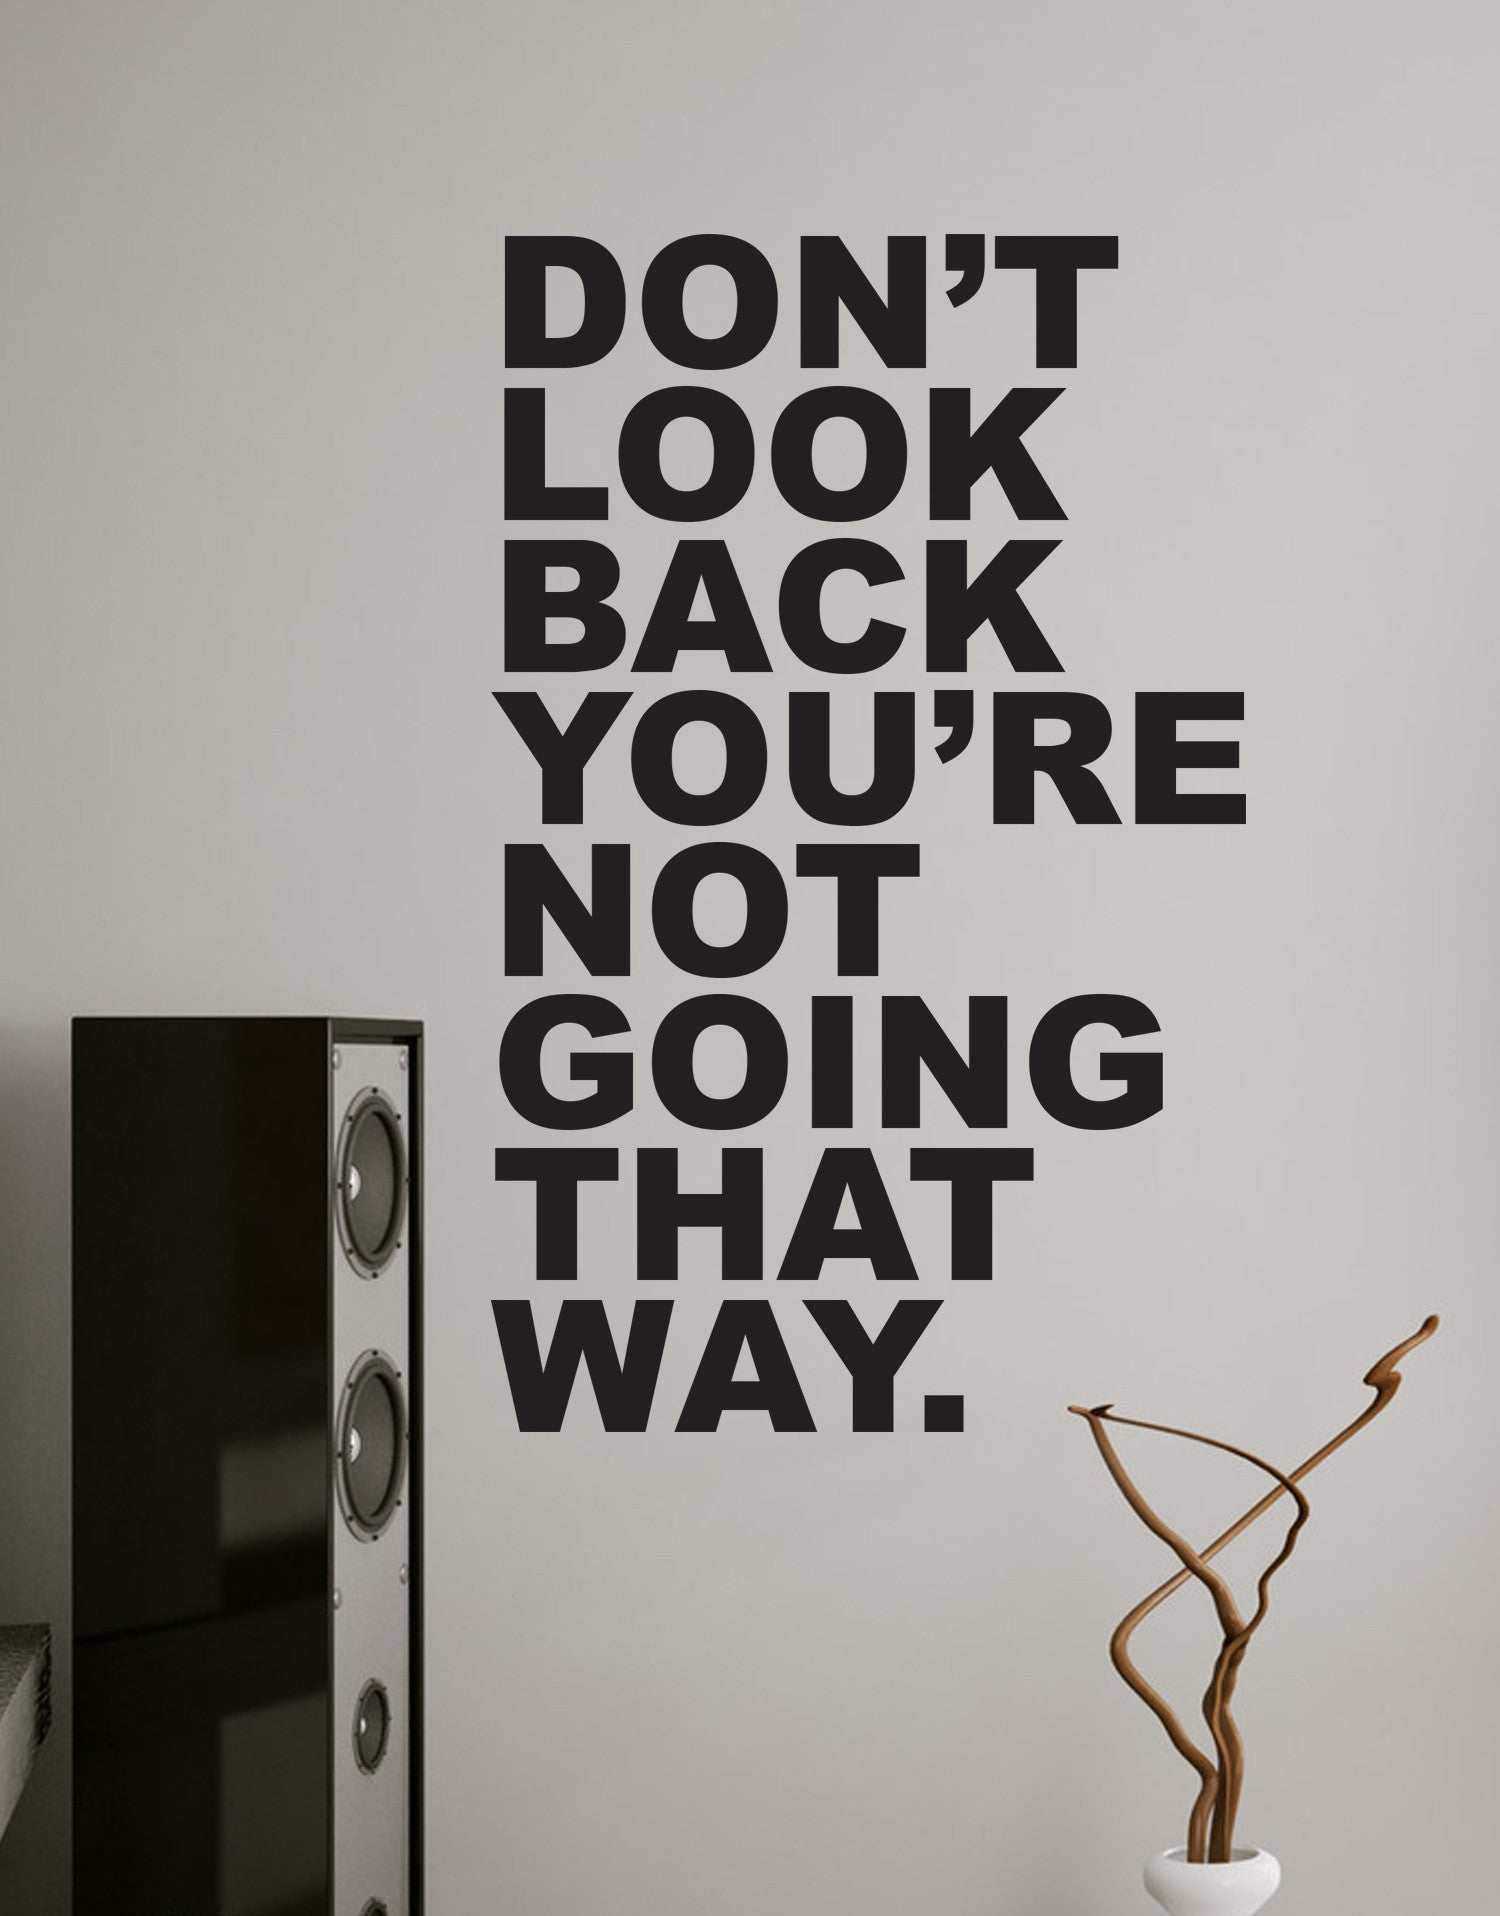 Motivational Quotes Dont Look Back Youre Not Going That Way 6053